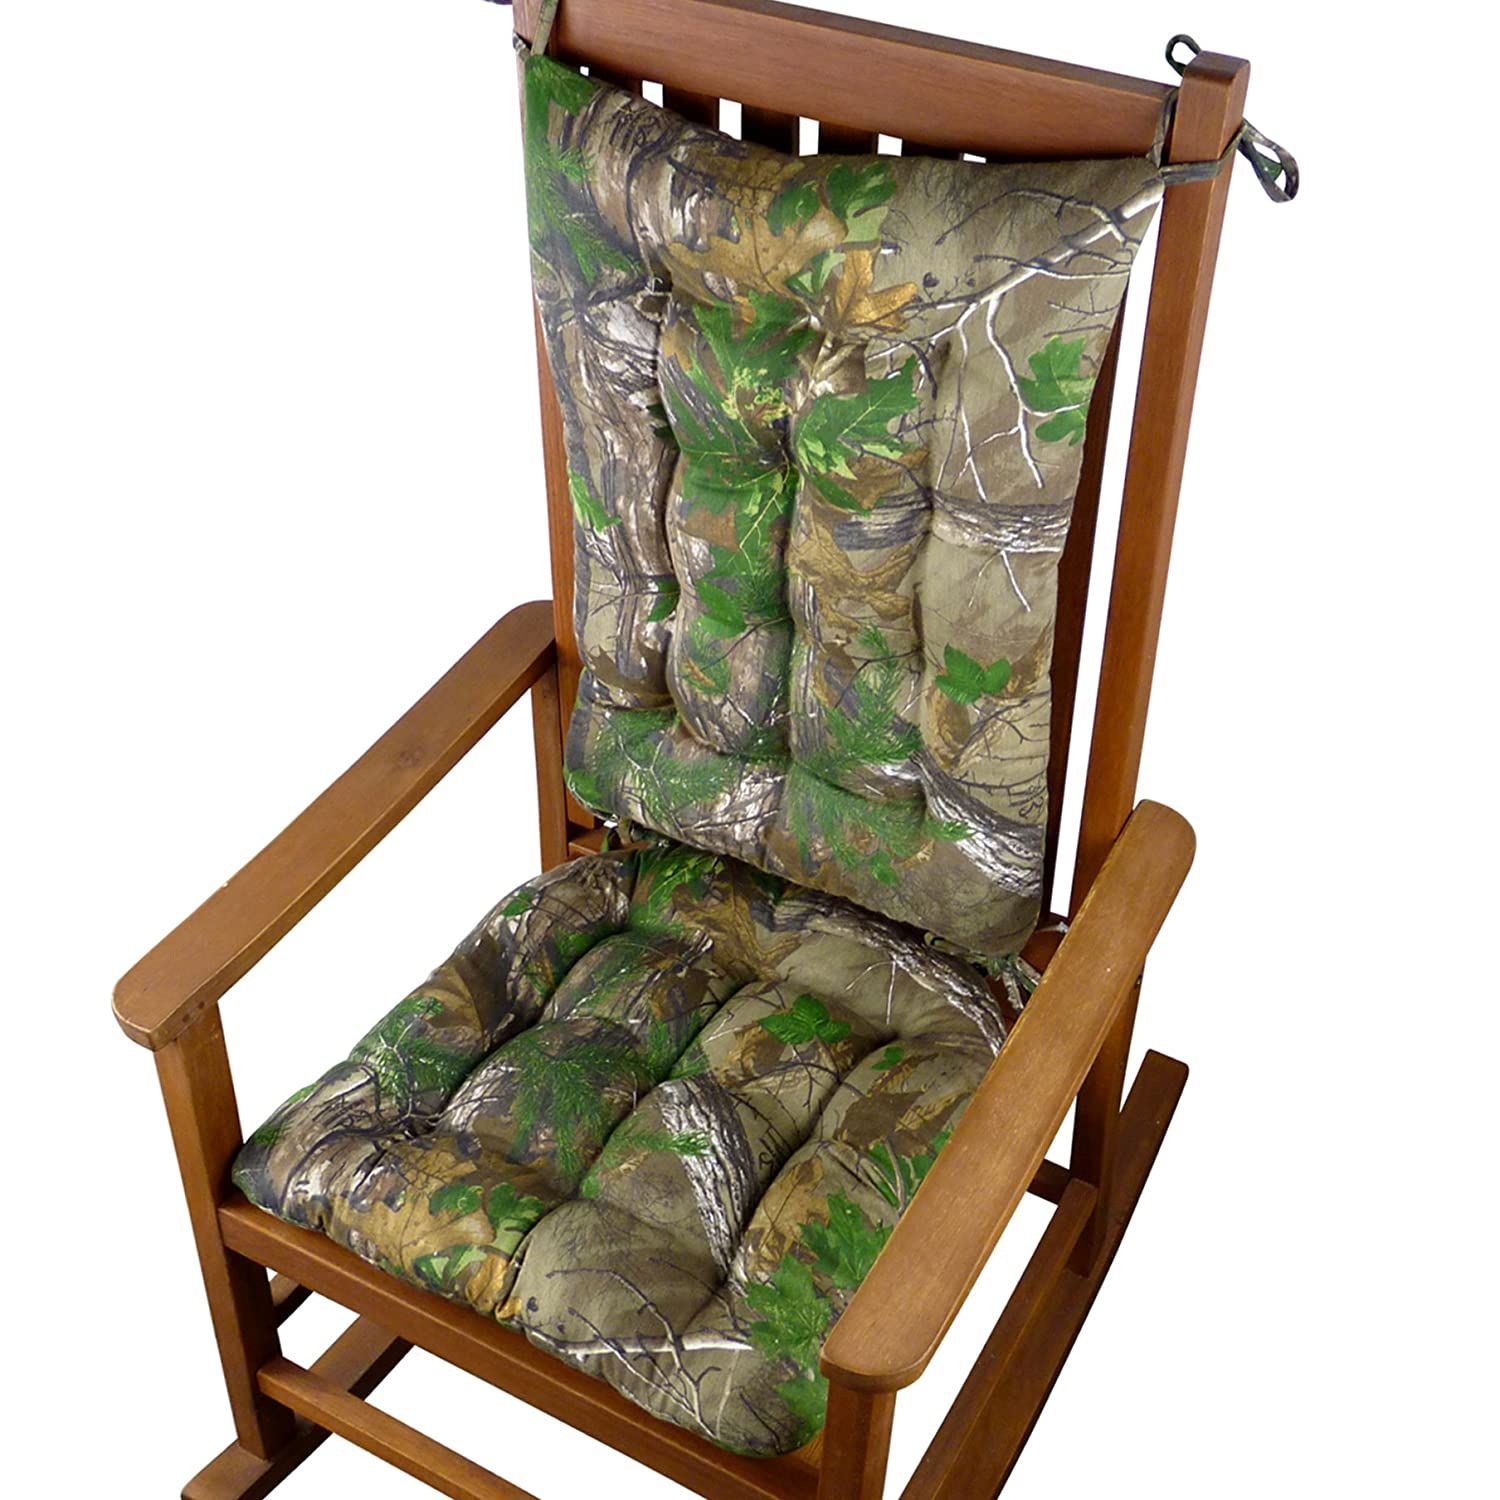 Enjoyable Realtree Xtra Green R Camo Rocking Chair Cushions Extra Large Reversible Latex Foam Fill Machine Washable Extra Large Squirreltailoven Fun Painted Chair Ideas Images Squirreltailovenorg